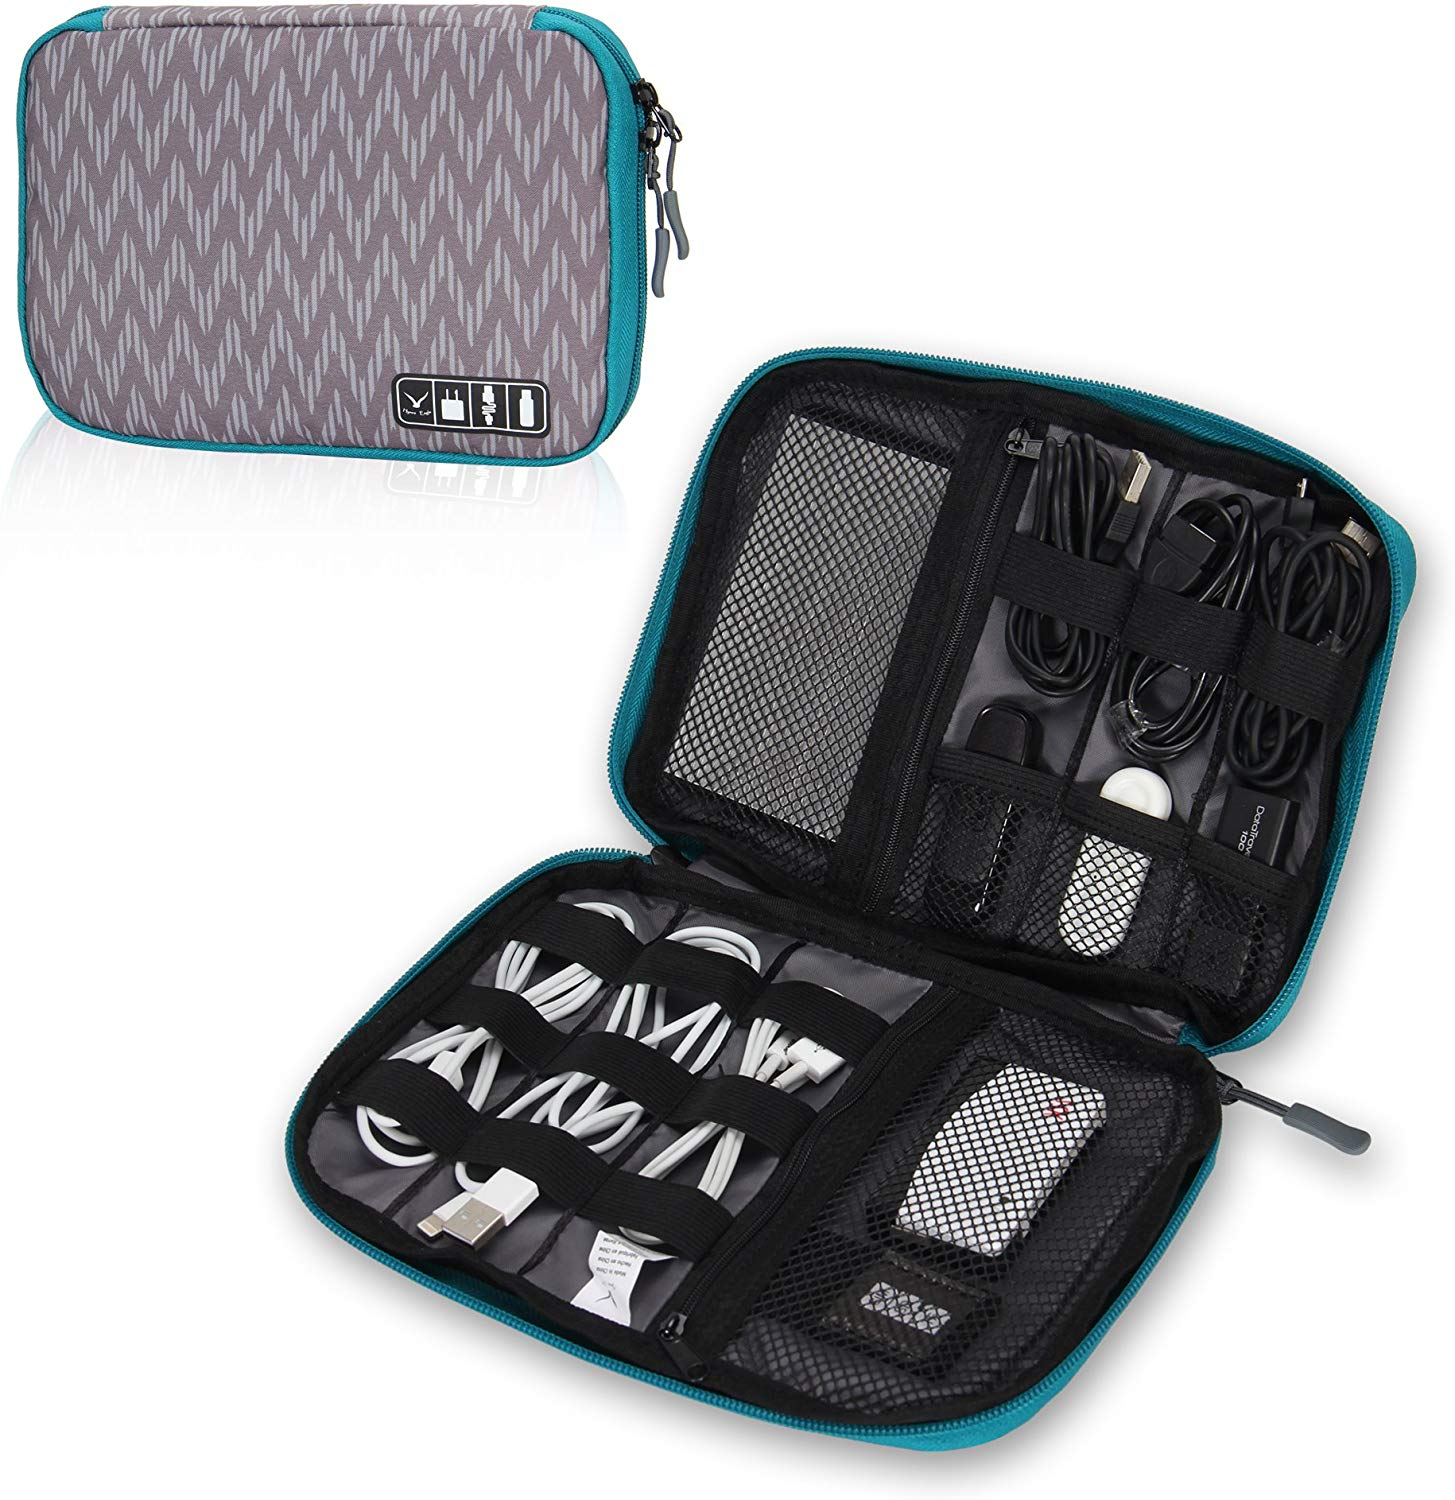 6. Hynes Eagle Travel Universal Cable Organizer